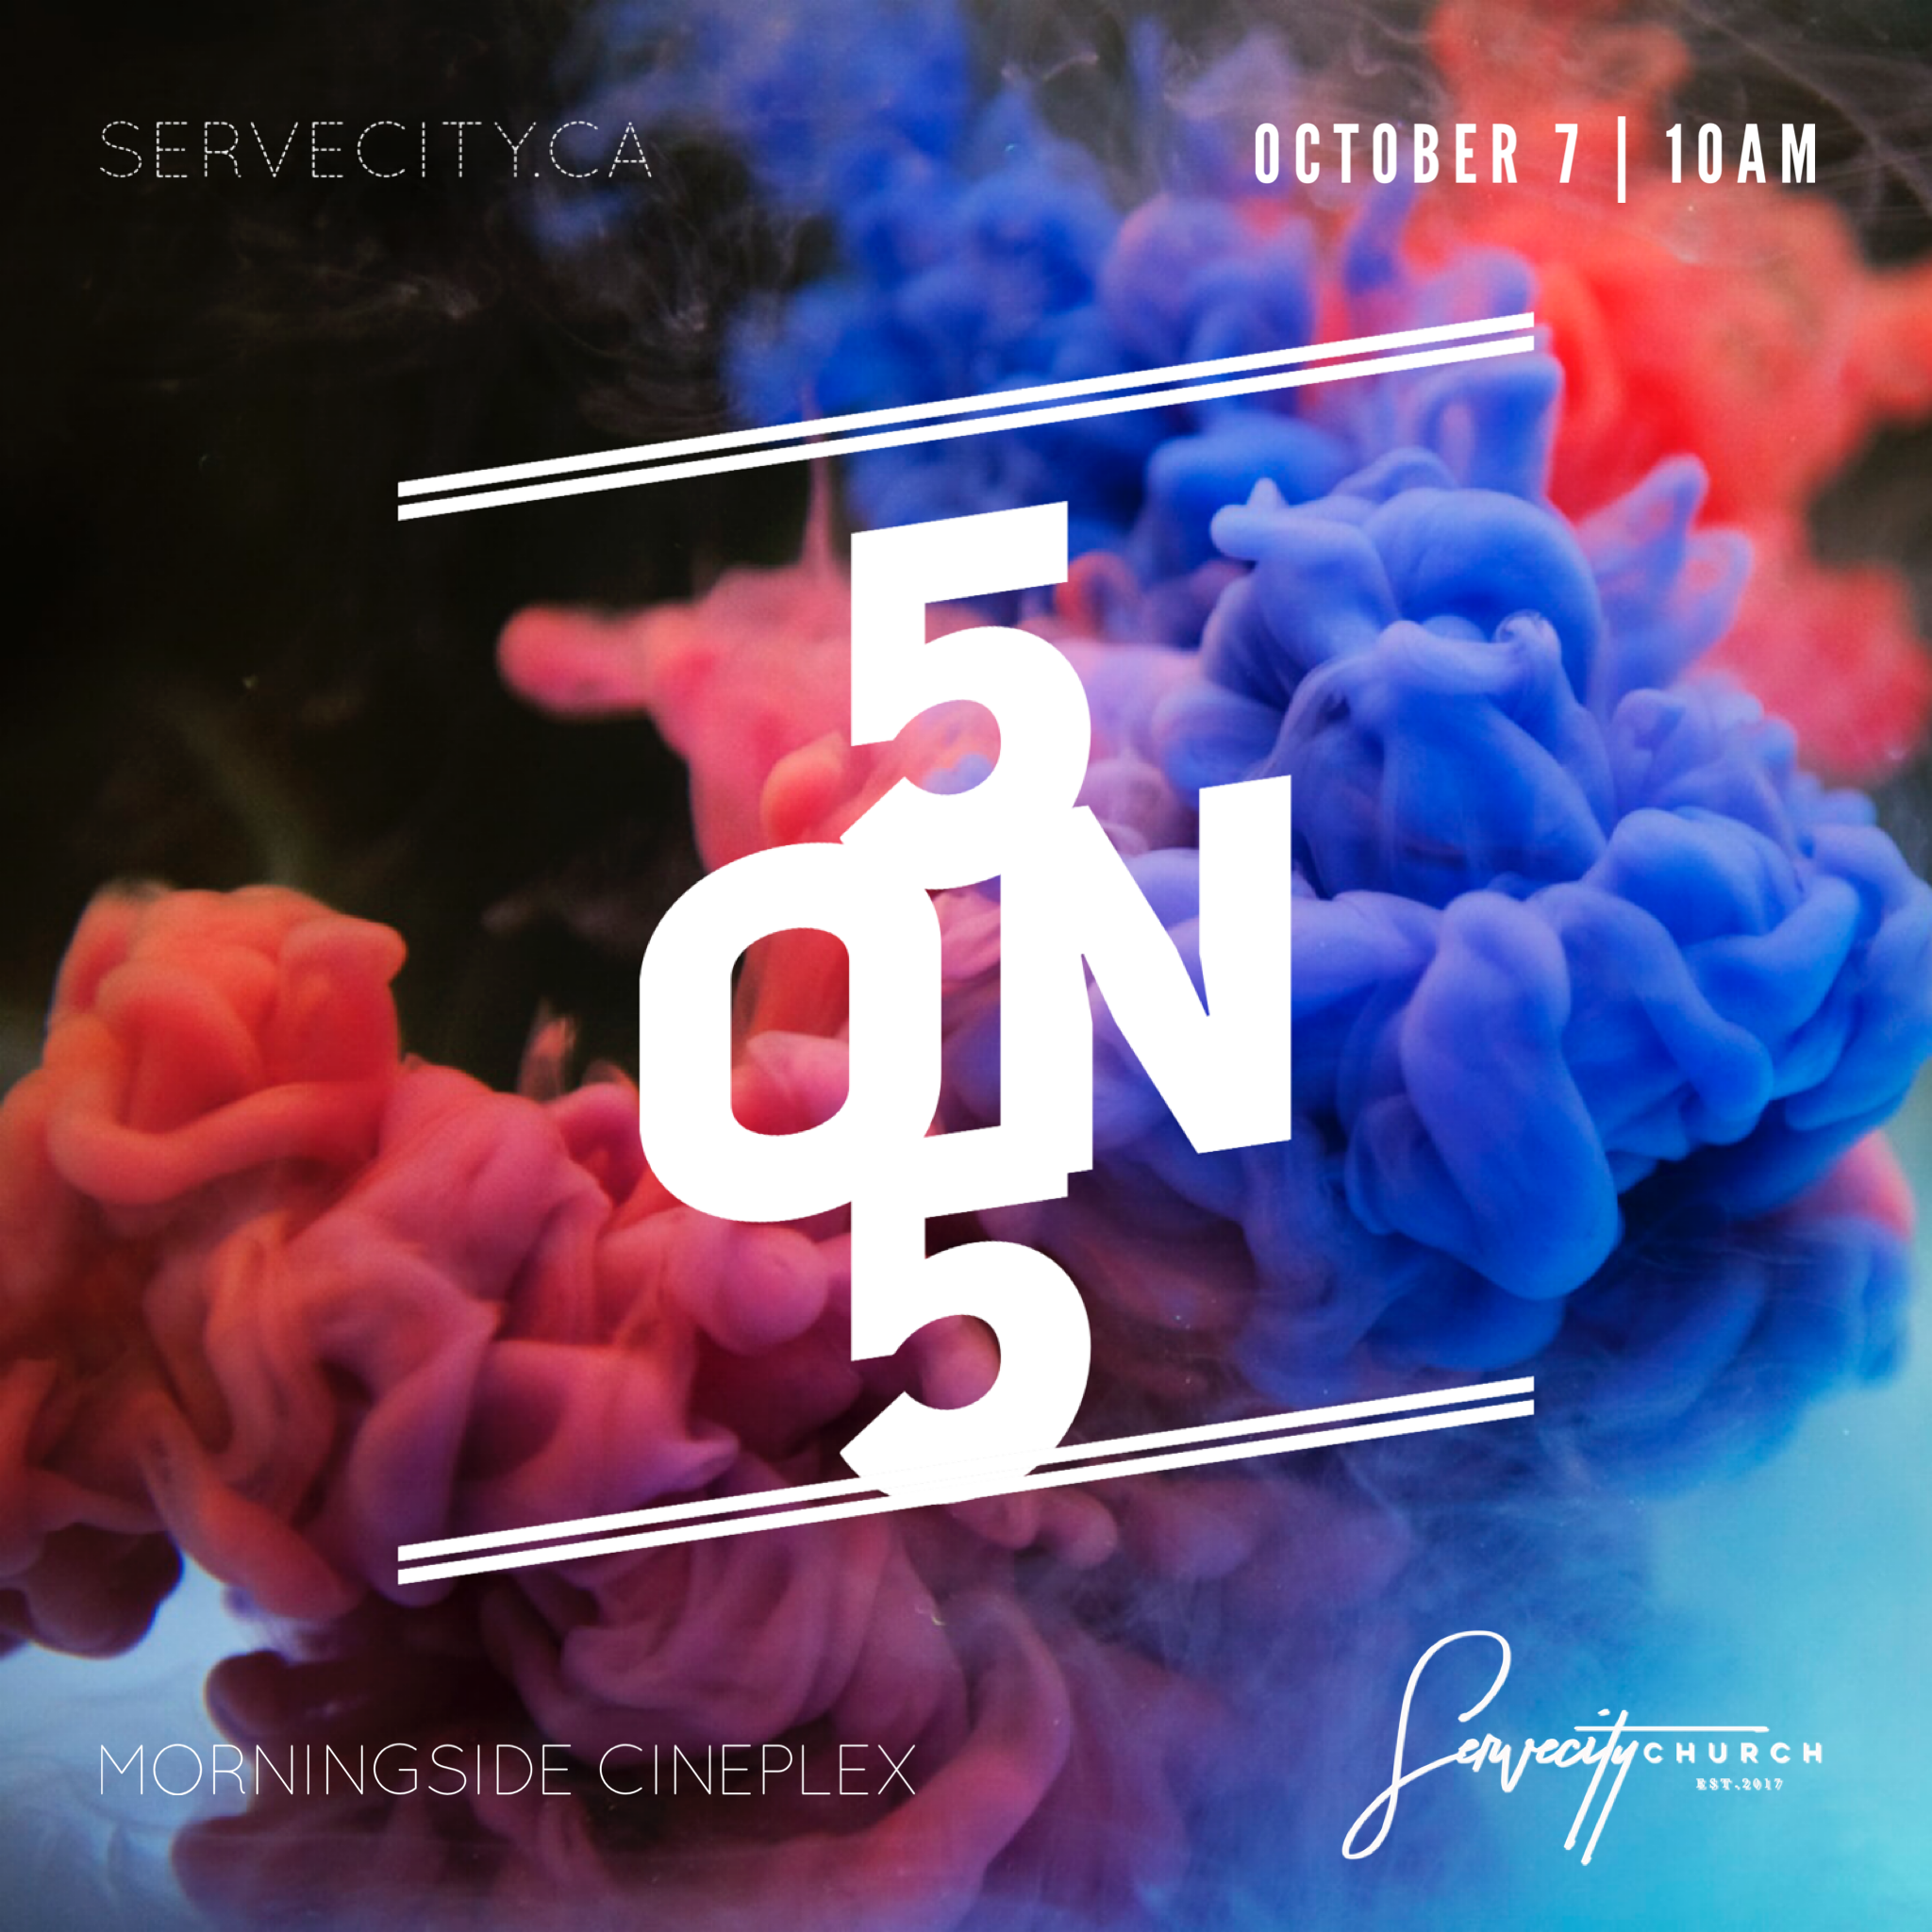 5 ON 5 Postcard Oct 7 2018.PNG